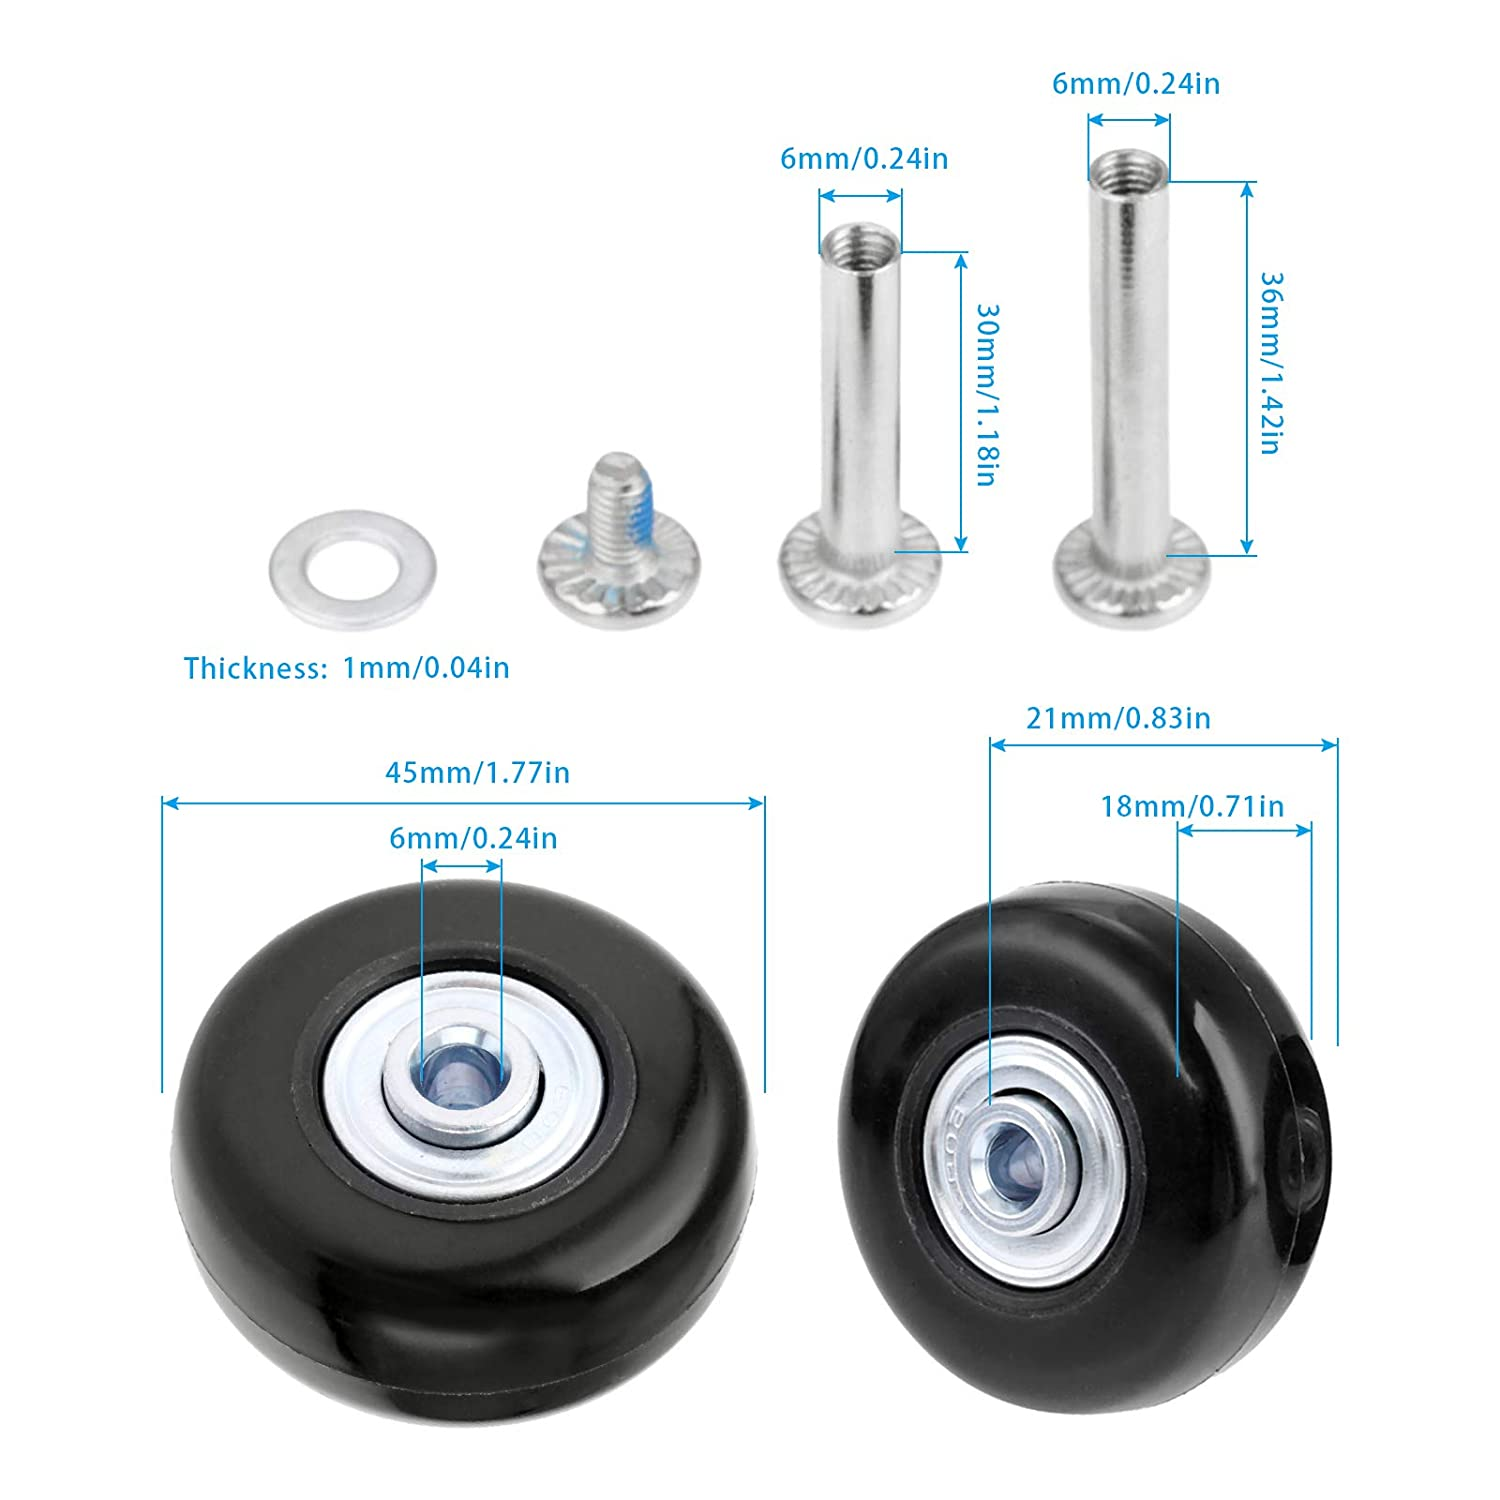 Mtsooning 2Set 68x24mm Clear Luggage Suitcase Replacement Wheels with Axles Wrench Repair Bearings